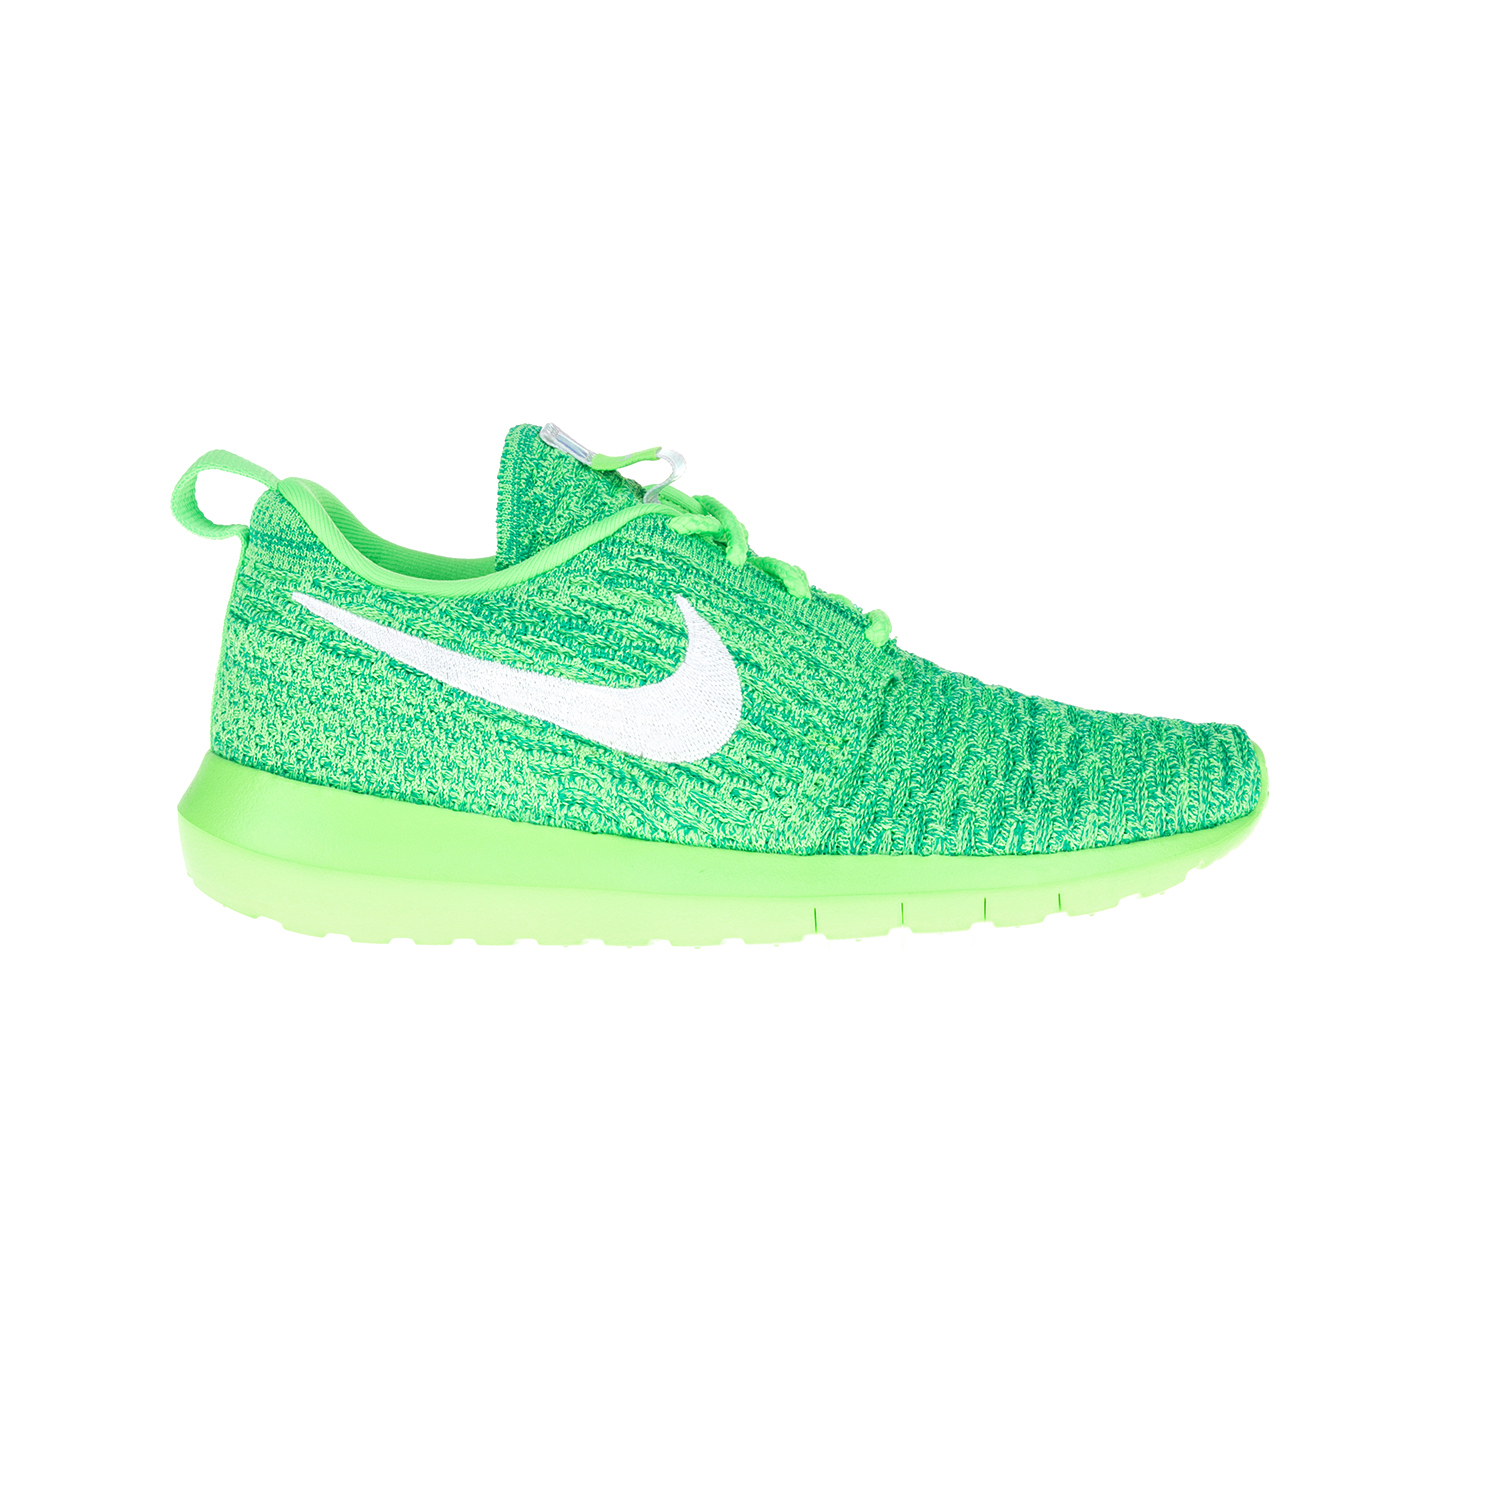 NIKE – Γυναικεία παπούτσια NIKE ROSHE NM FLYKNIT πράσινα